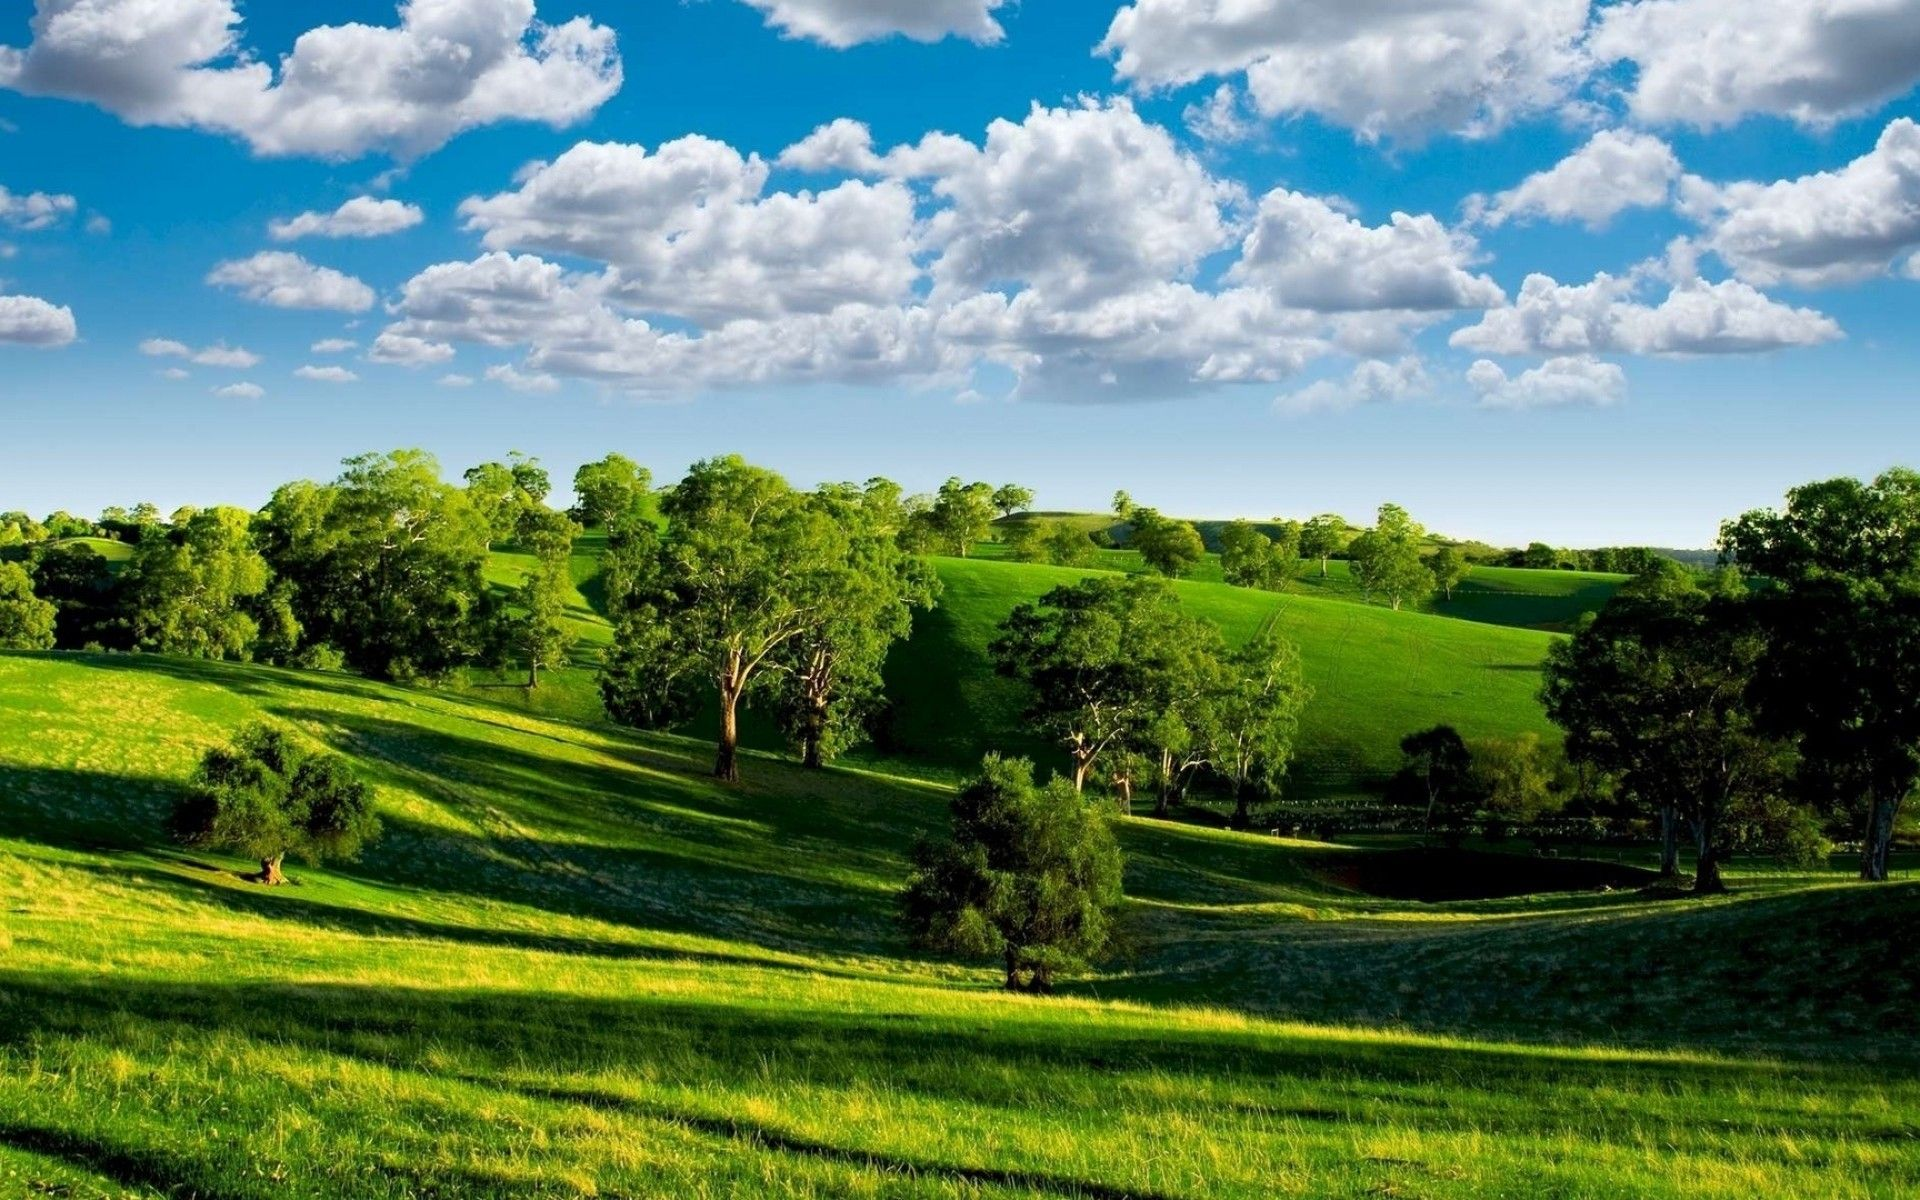 Green Nature Trees On The Field And Beautiful Blue Sky 1920x1200 Download Green Landscape Landscape Landscape Wallpaper Autumn grass field mountain forest trees